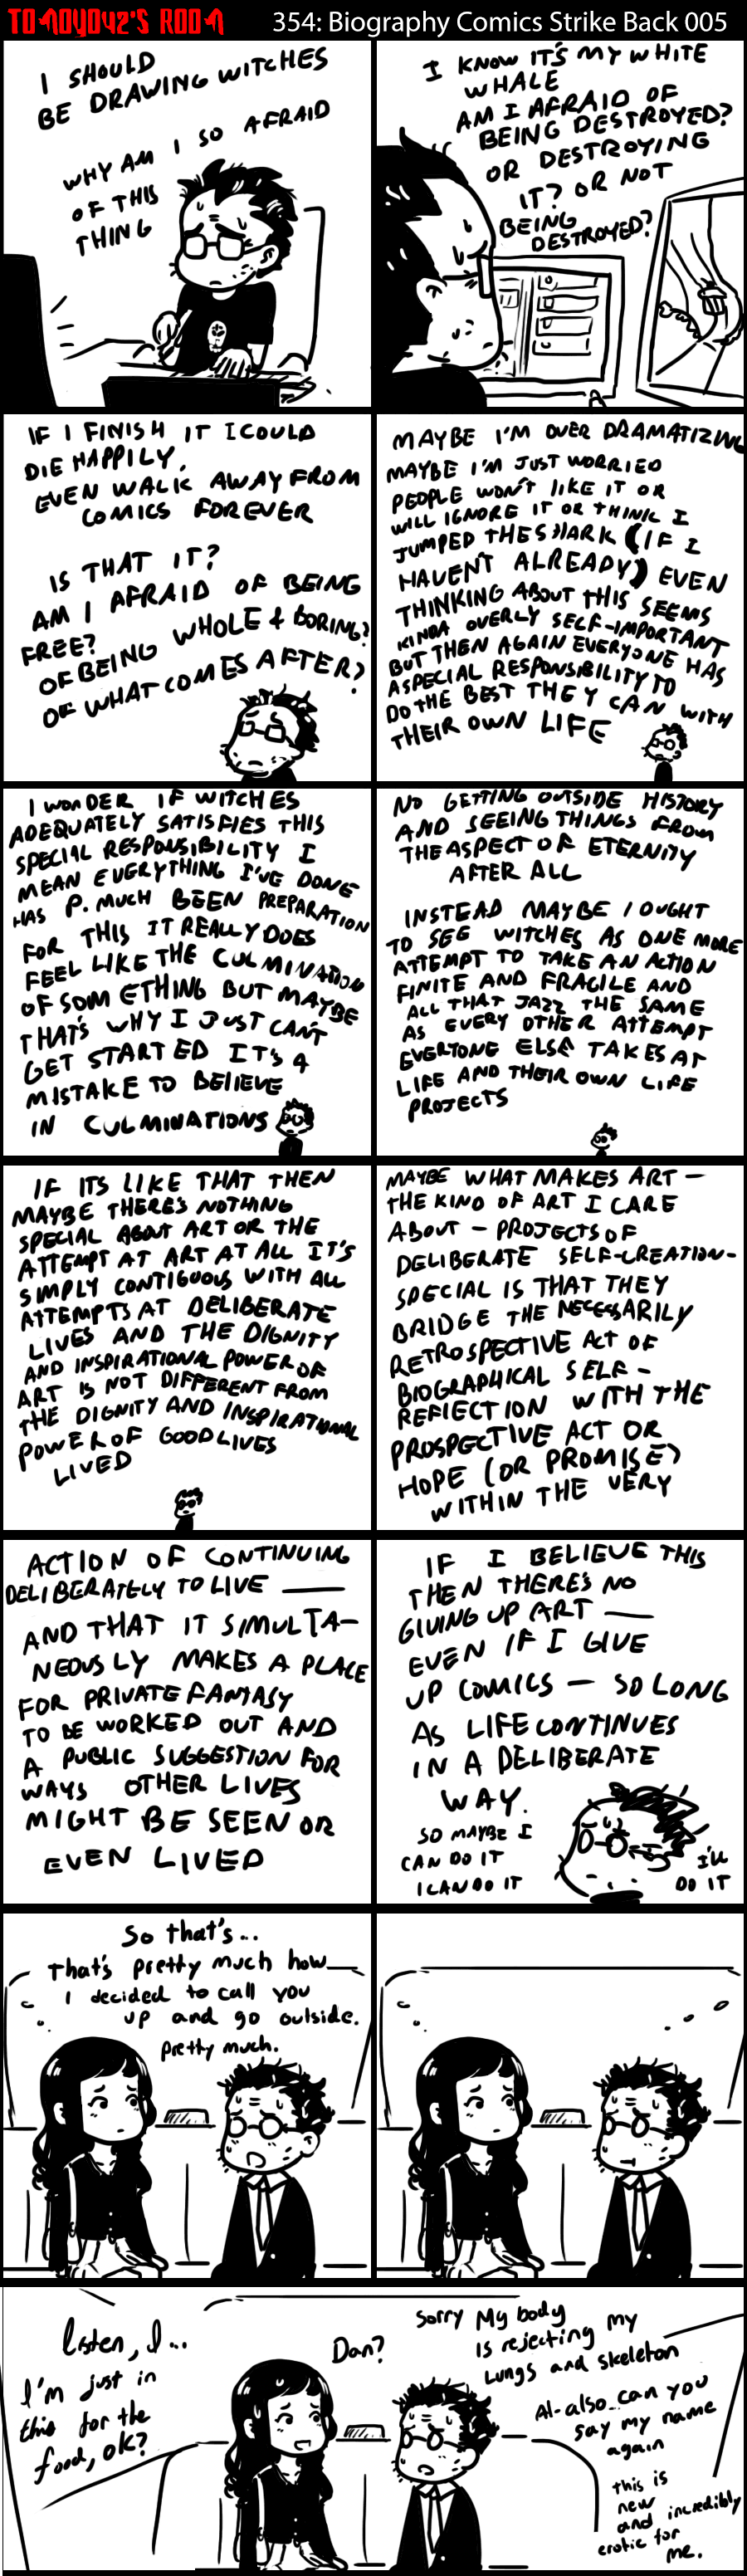 [ Tomoyo42's Room - 354 ]